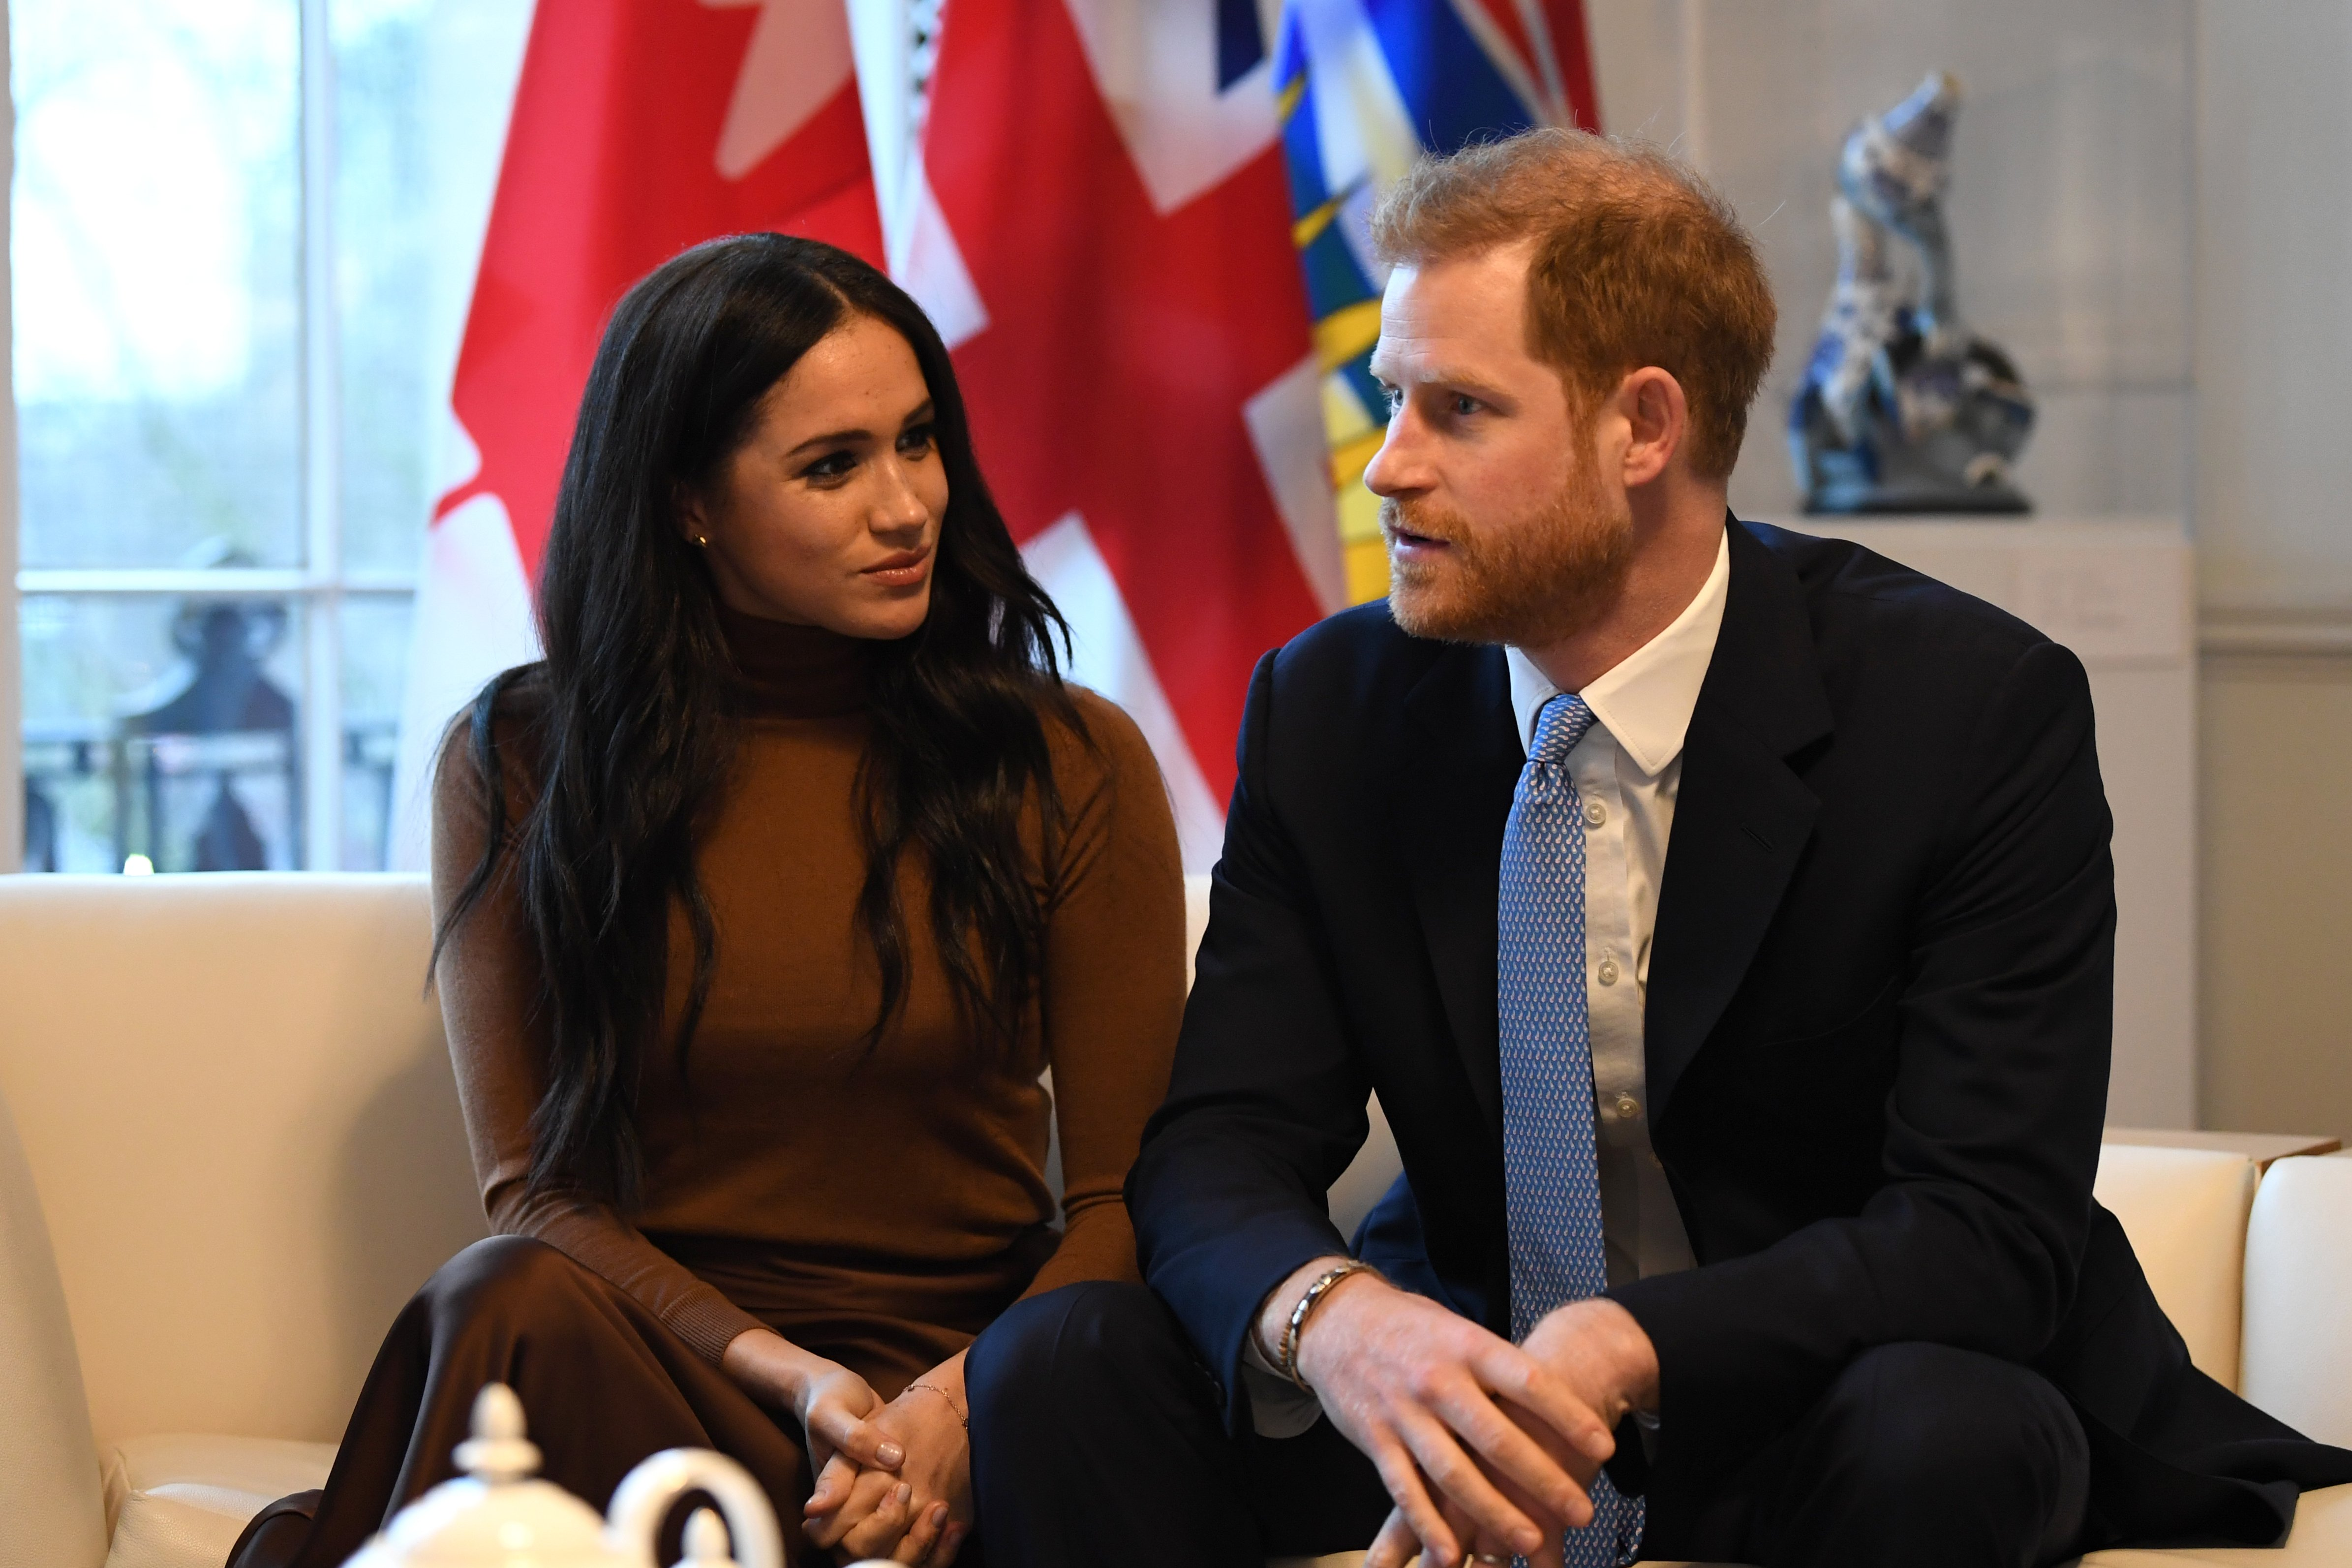 Prince Harry and his wife Meghan Markle gesture during their visit to Canada House on January 7, 2020 in London, England | Photo: Getty Images